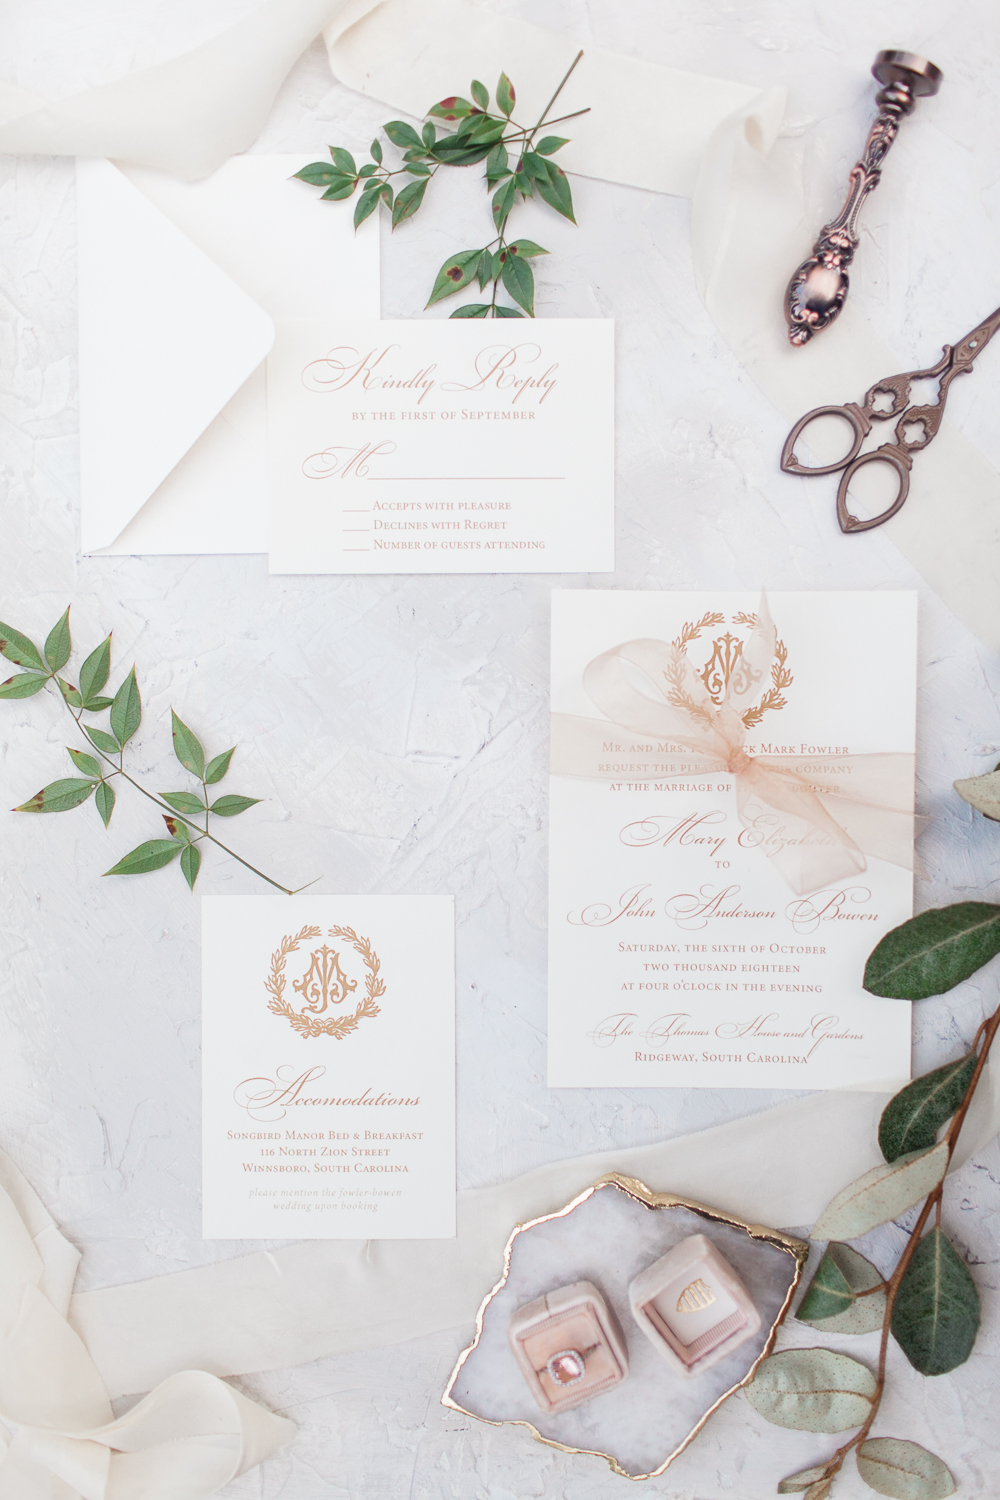 Pro Tip: Bring Your Invites - Bring your Whole INvitation Suite. Envelopes and all. they Set the tone for your wedding and deserve their time to shine.